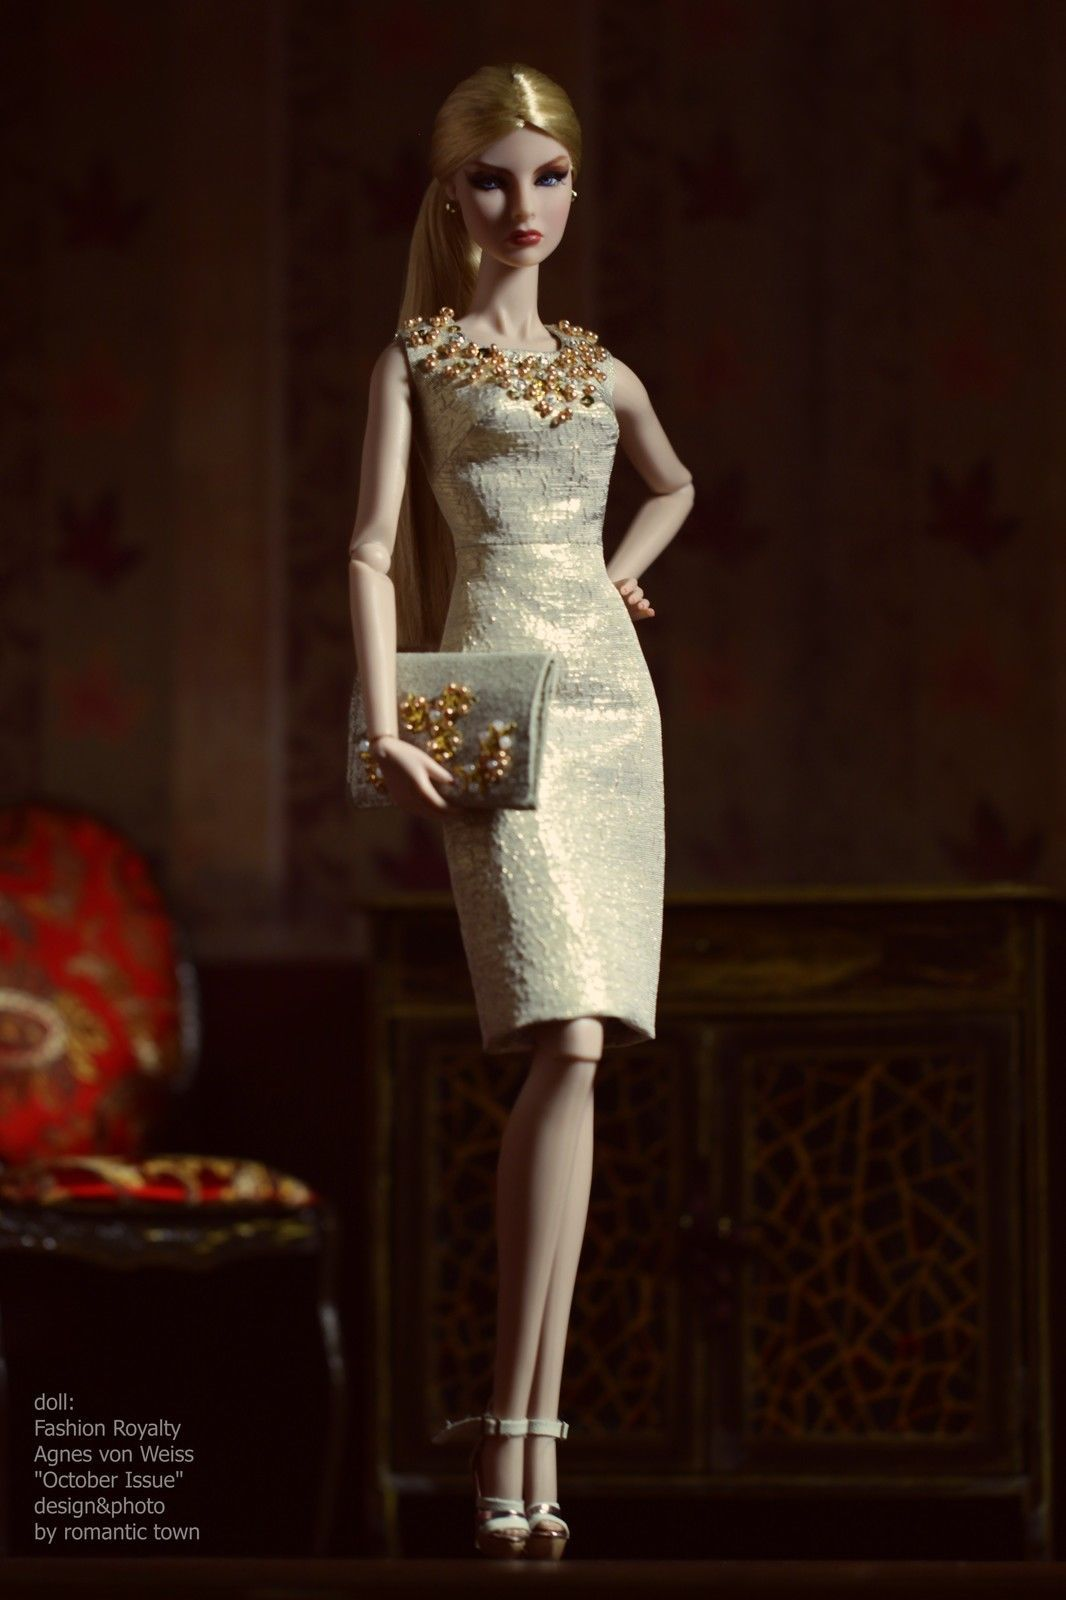 Elenpriv OOAK Outfit for Fashion Royalty FR2 Doll Clothes 15 eBay 84